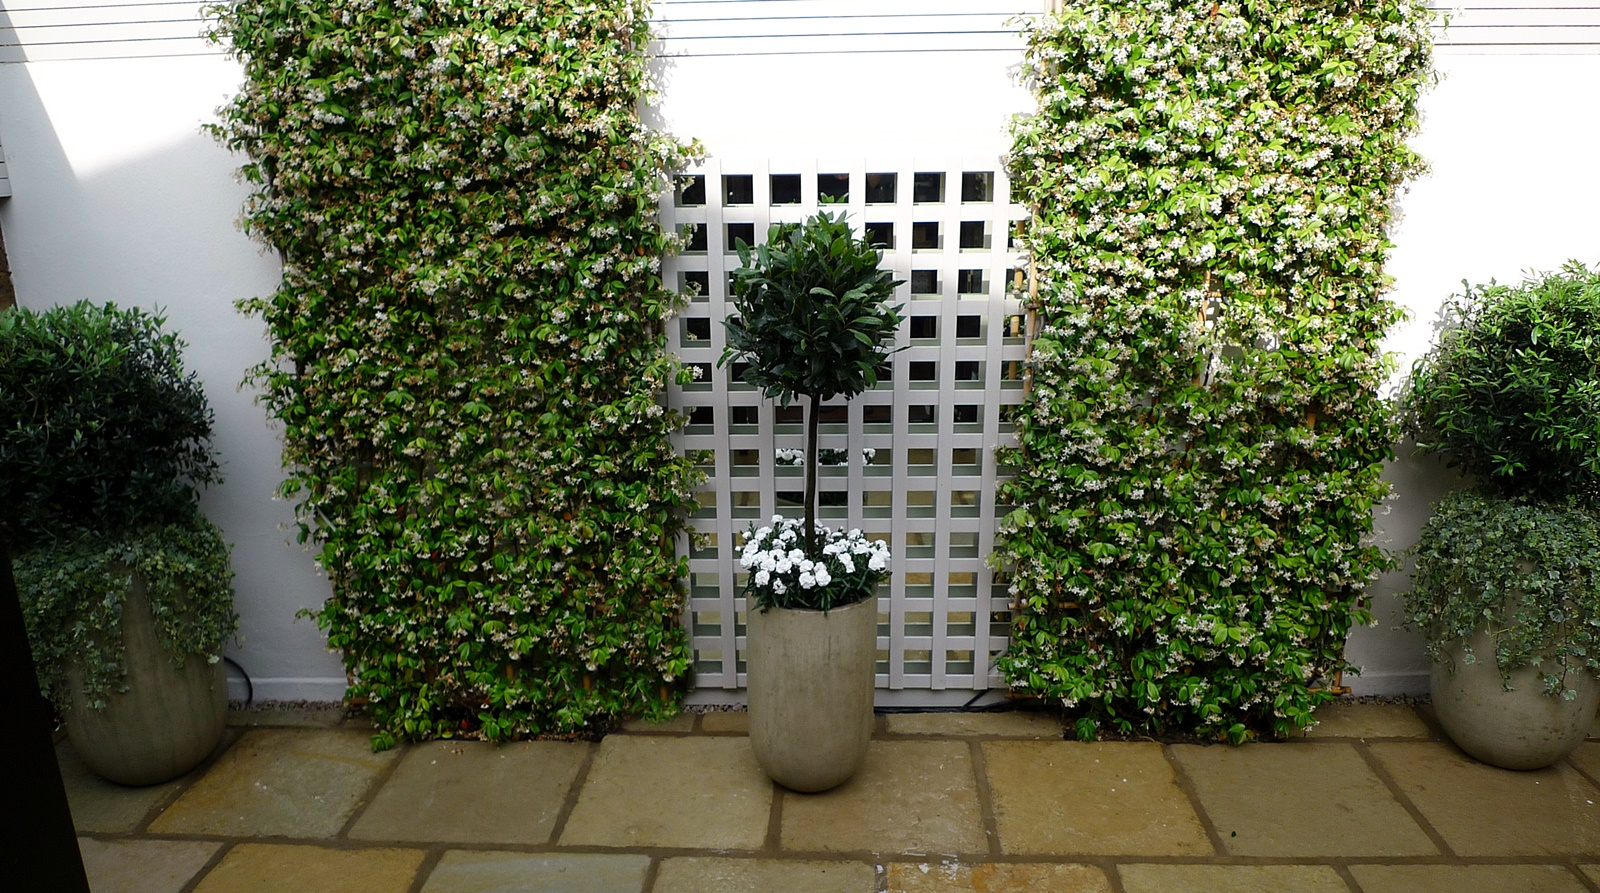 Courtyard minimalist contemporary garden design and designer kensington london